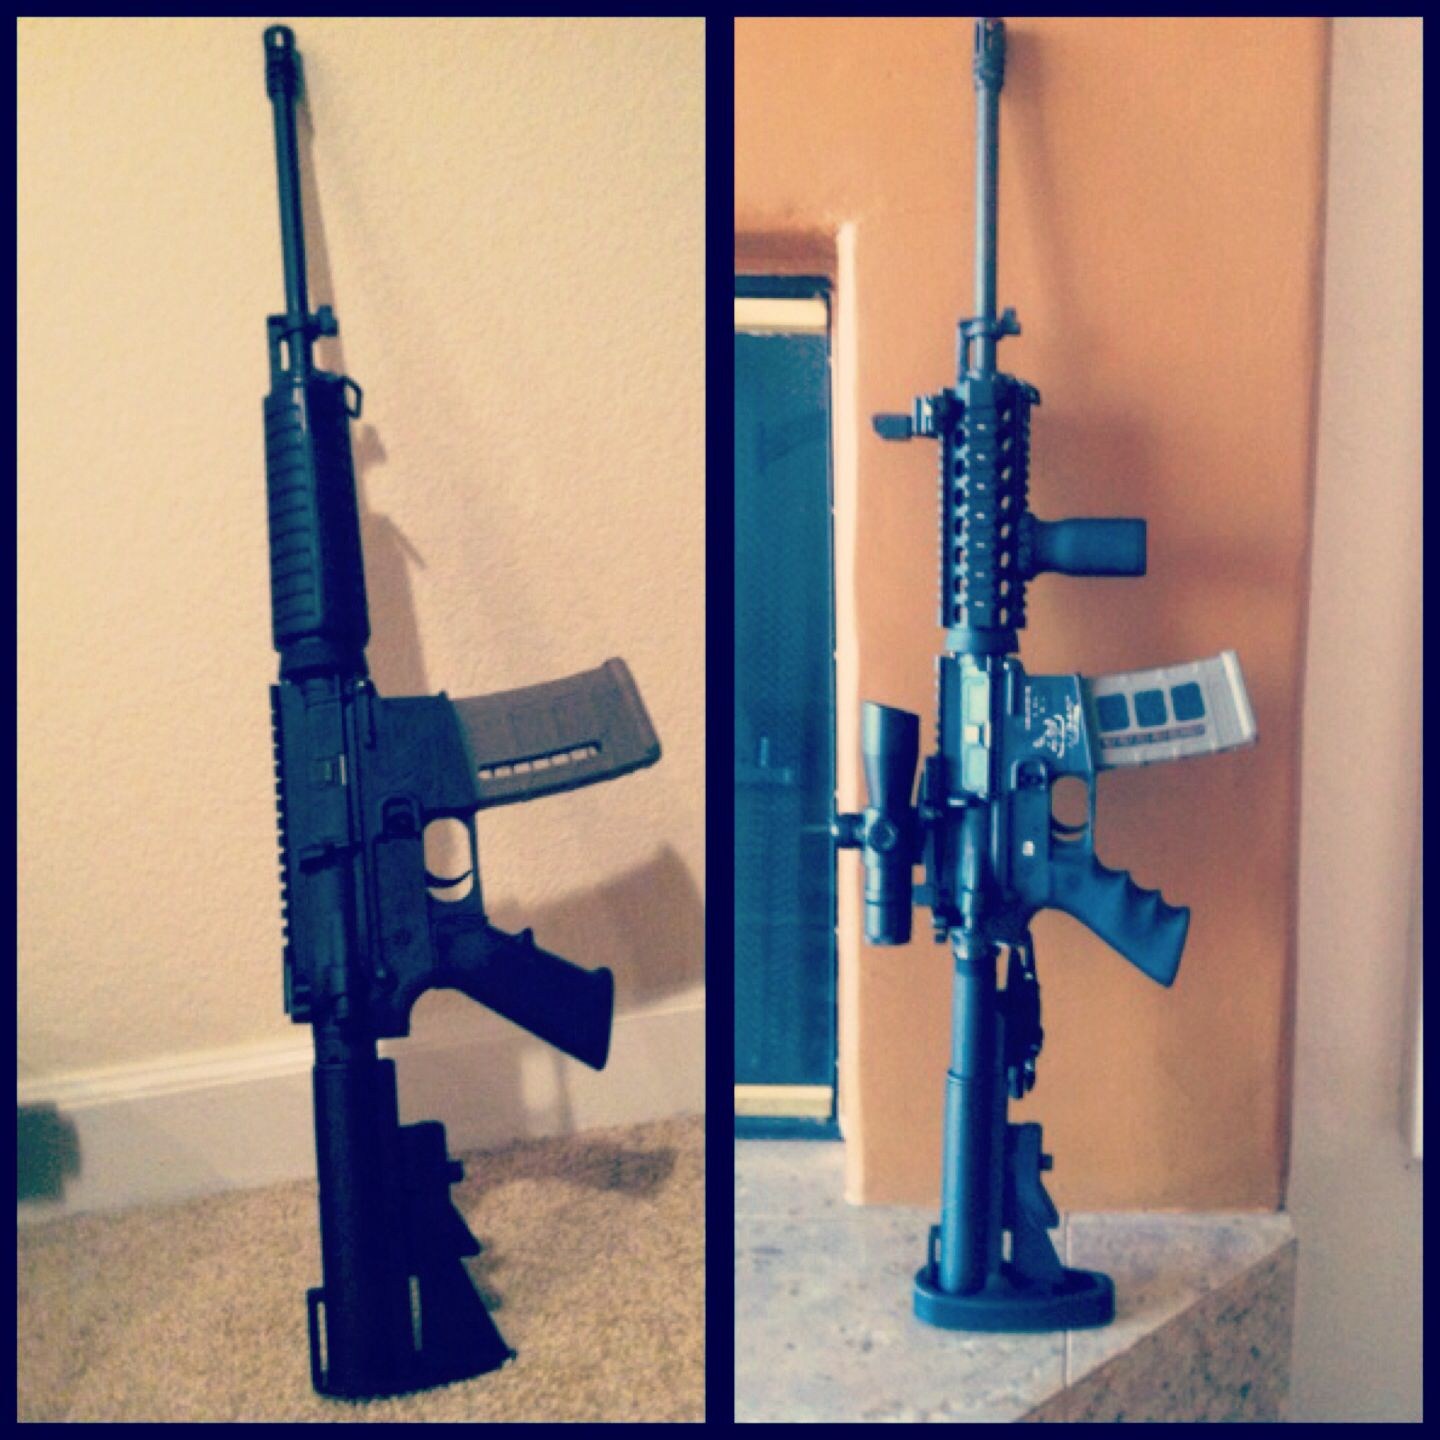 Before and after Bushmaster Carbon-15 AR15 | Guns I own | Pinterest ...